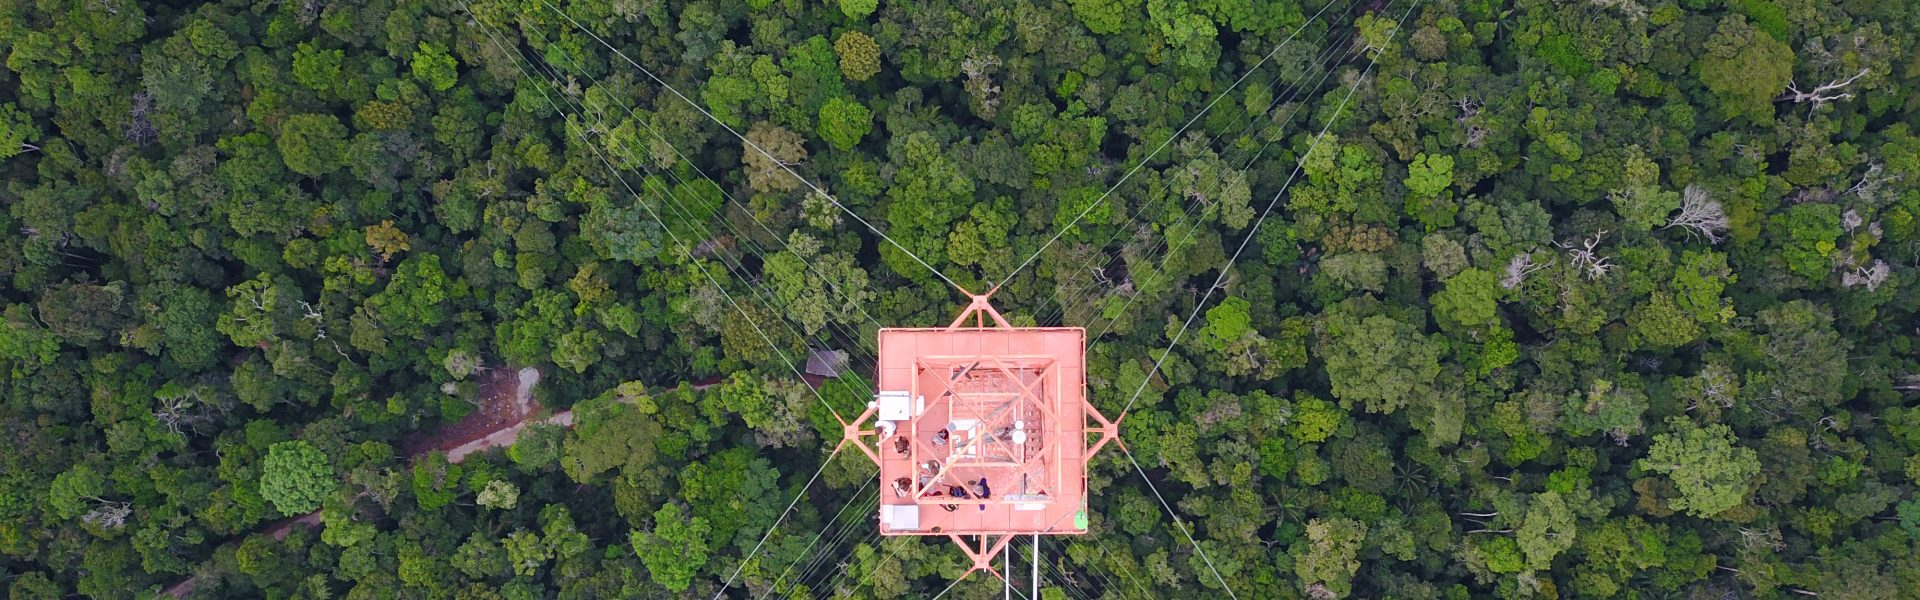 "Cloud radar: Measuring from a ""hole"" in the forest"